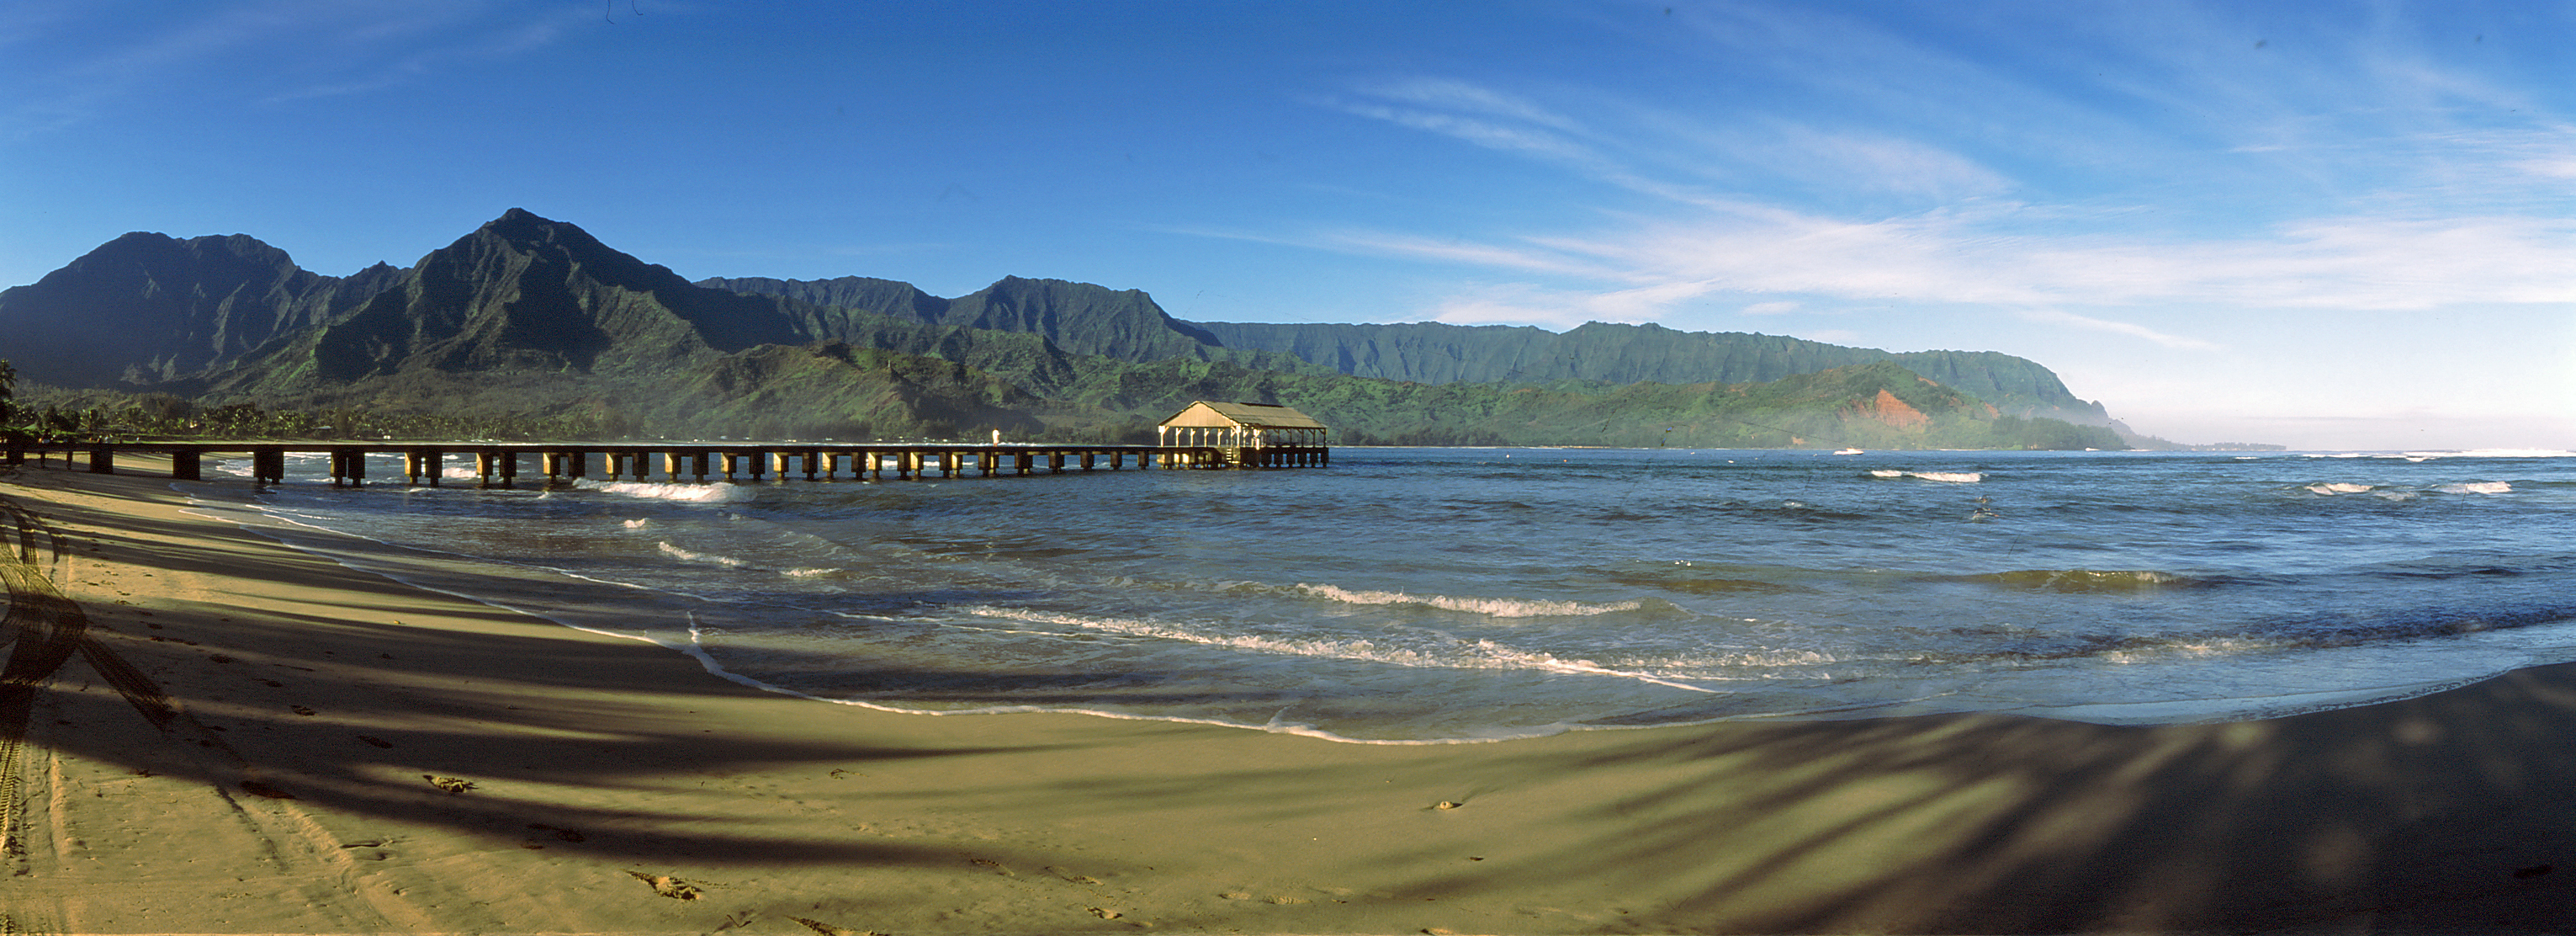 Kauaʻi Beach Park Reopens After 6m Repair Project Completed